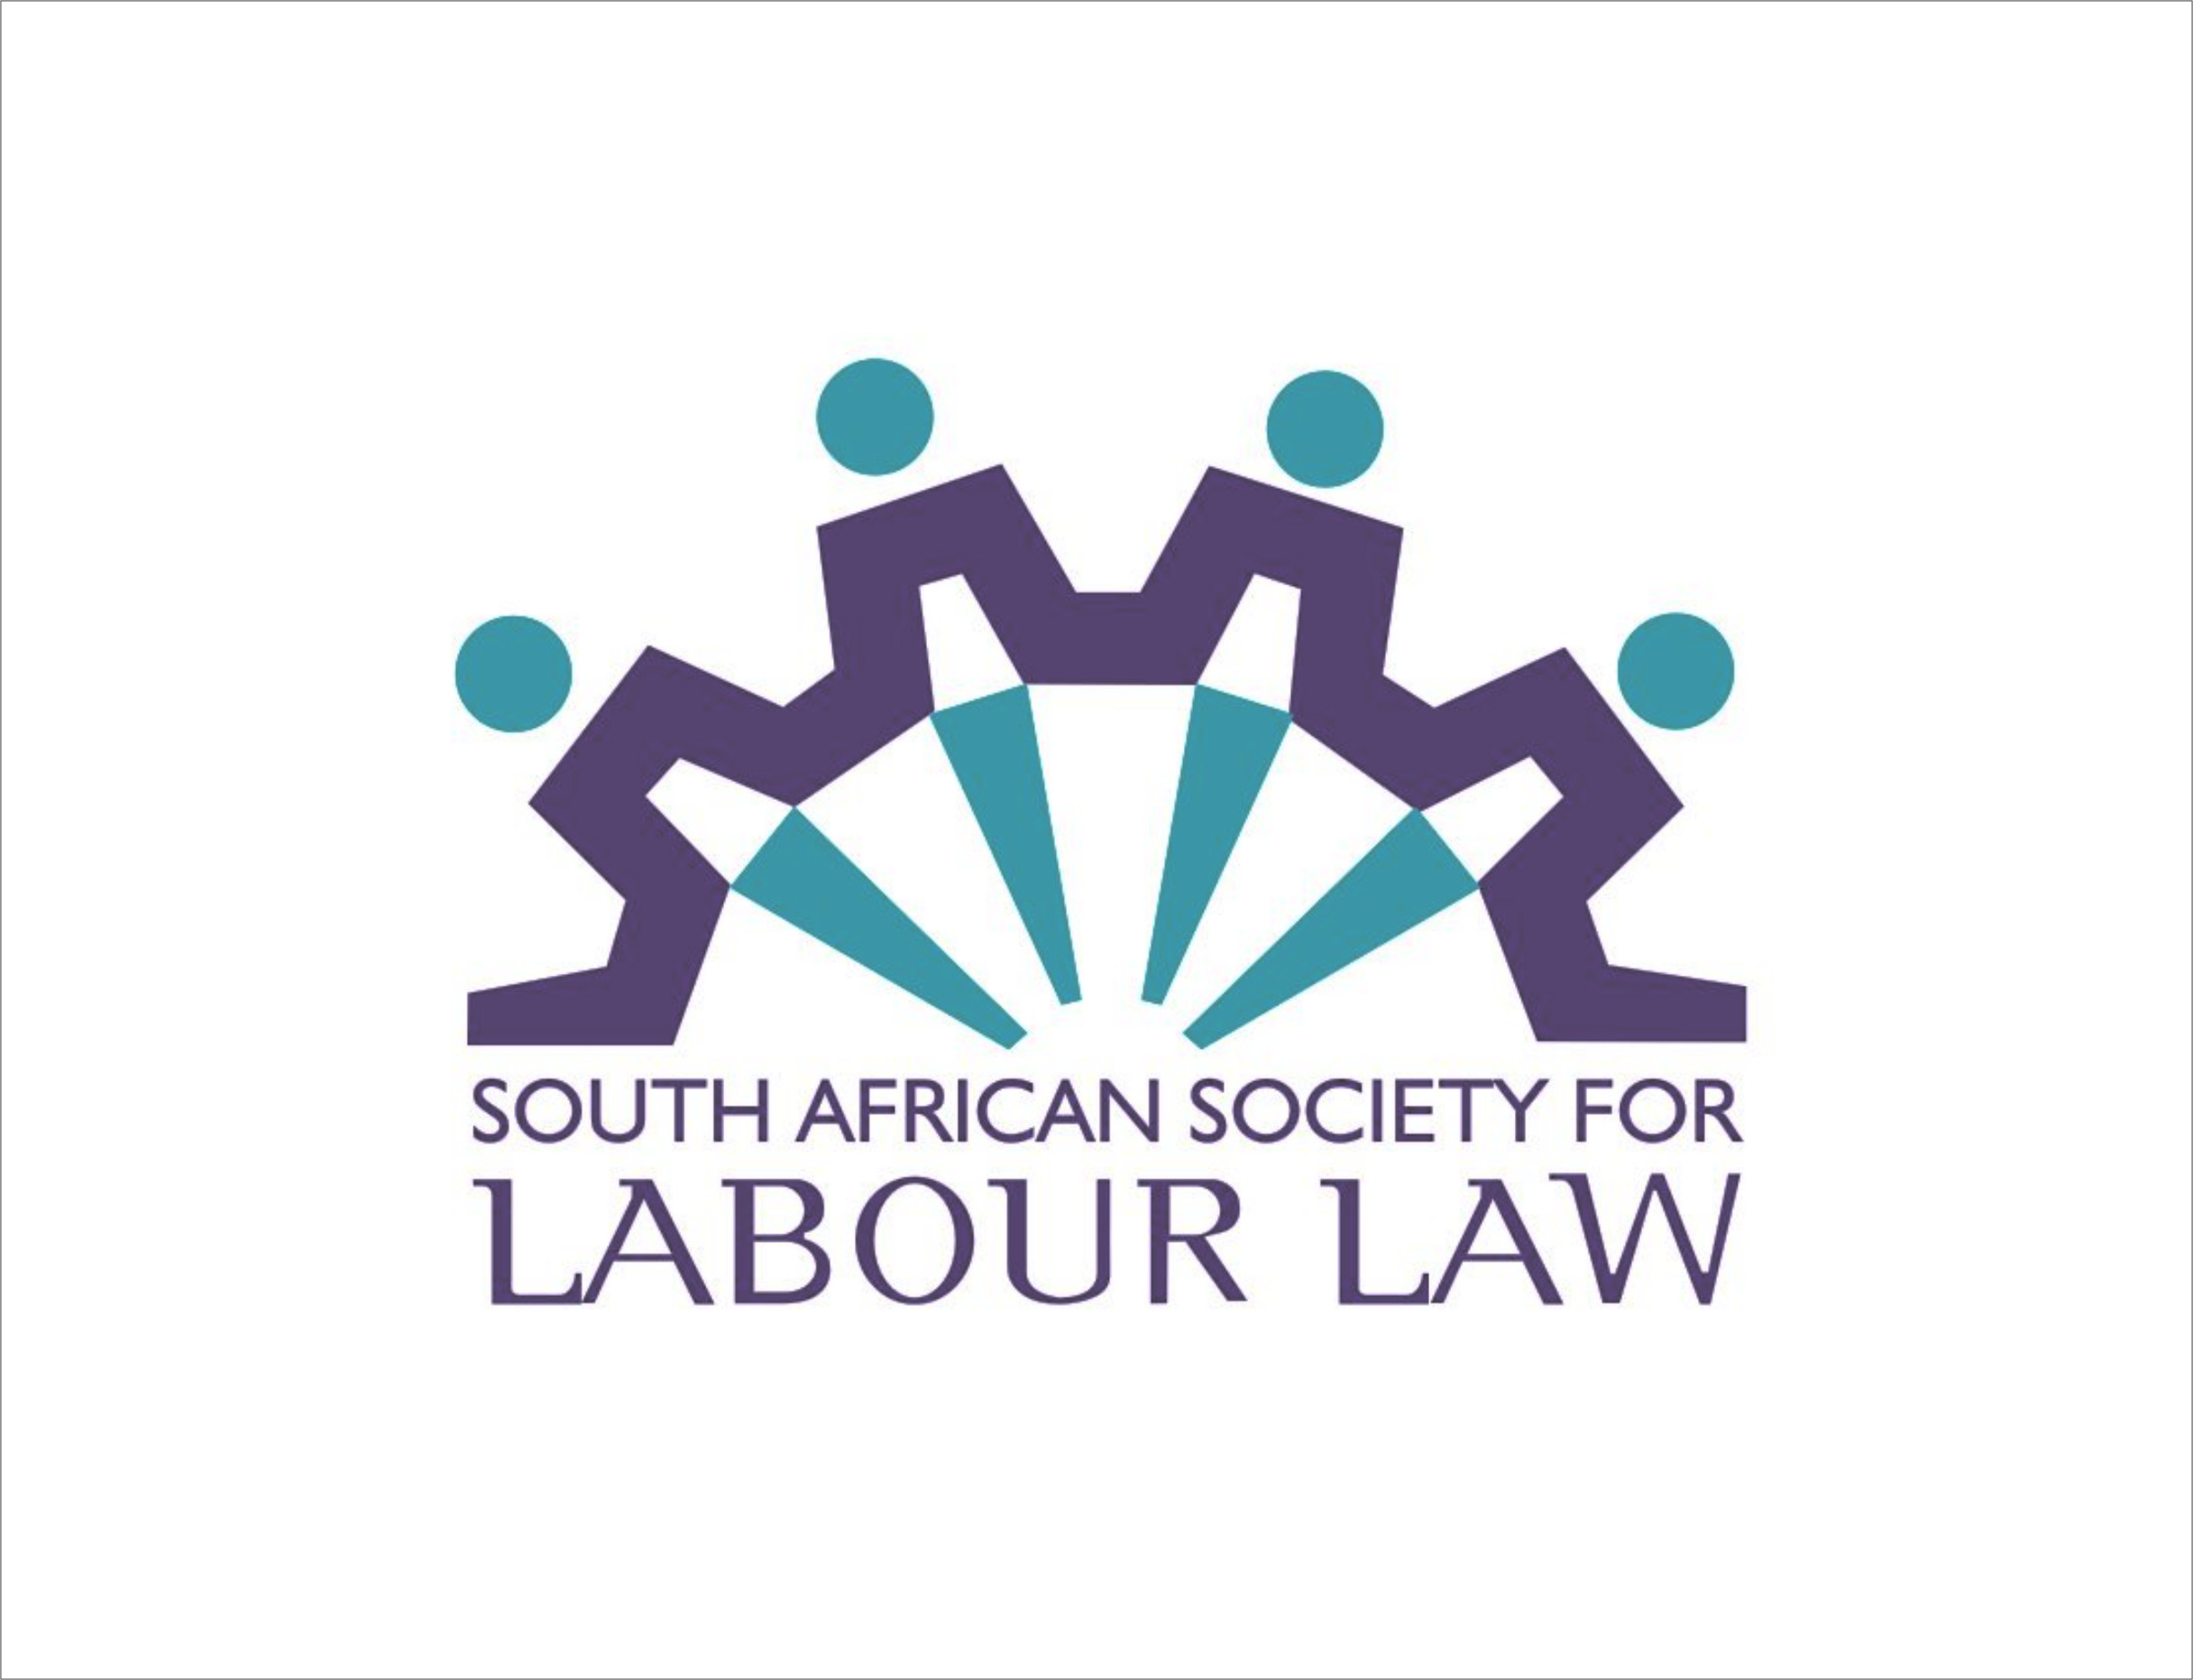 labour law in south africa Section 23(1) is an unusual provision—only south africa and malawi expressly protect the right to fair labour practices — as it is so broad and overarching an exact definition of fair labour practices is impossible, since this is a dynamic field of the law, rooted in socioeconomic rights.